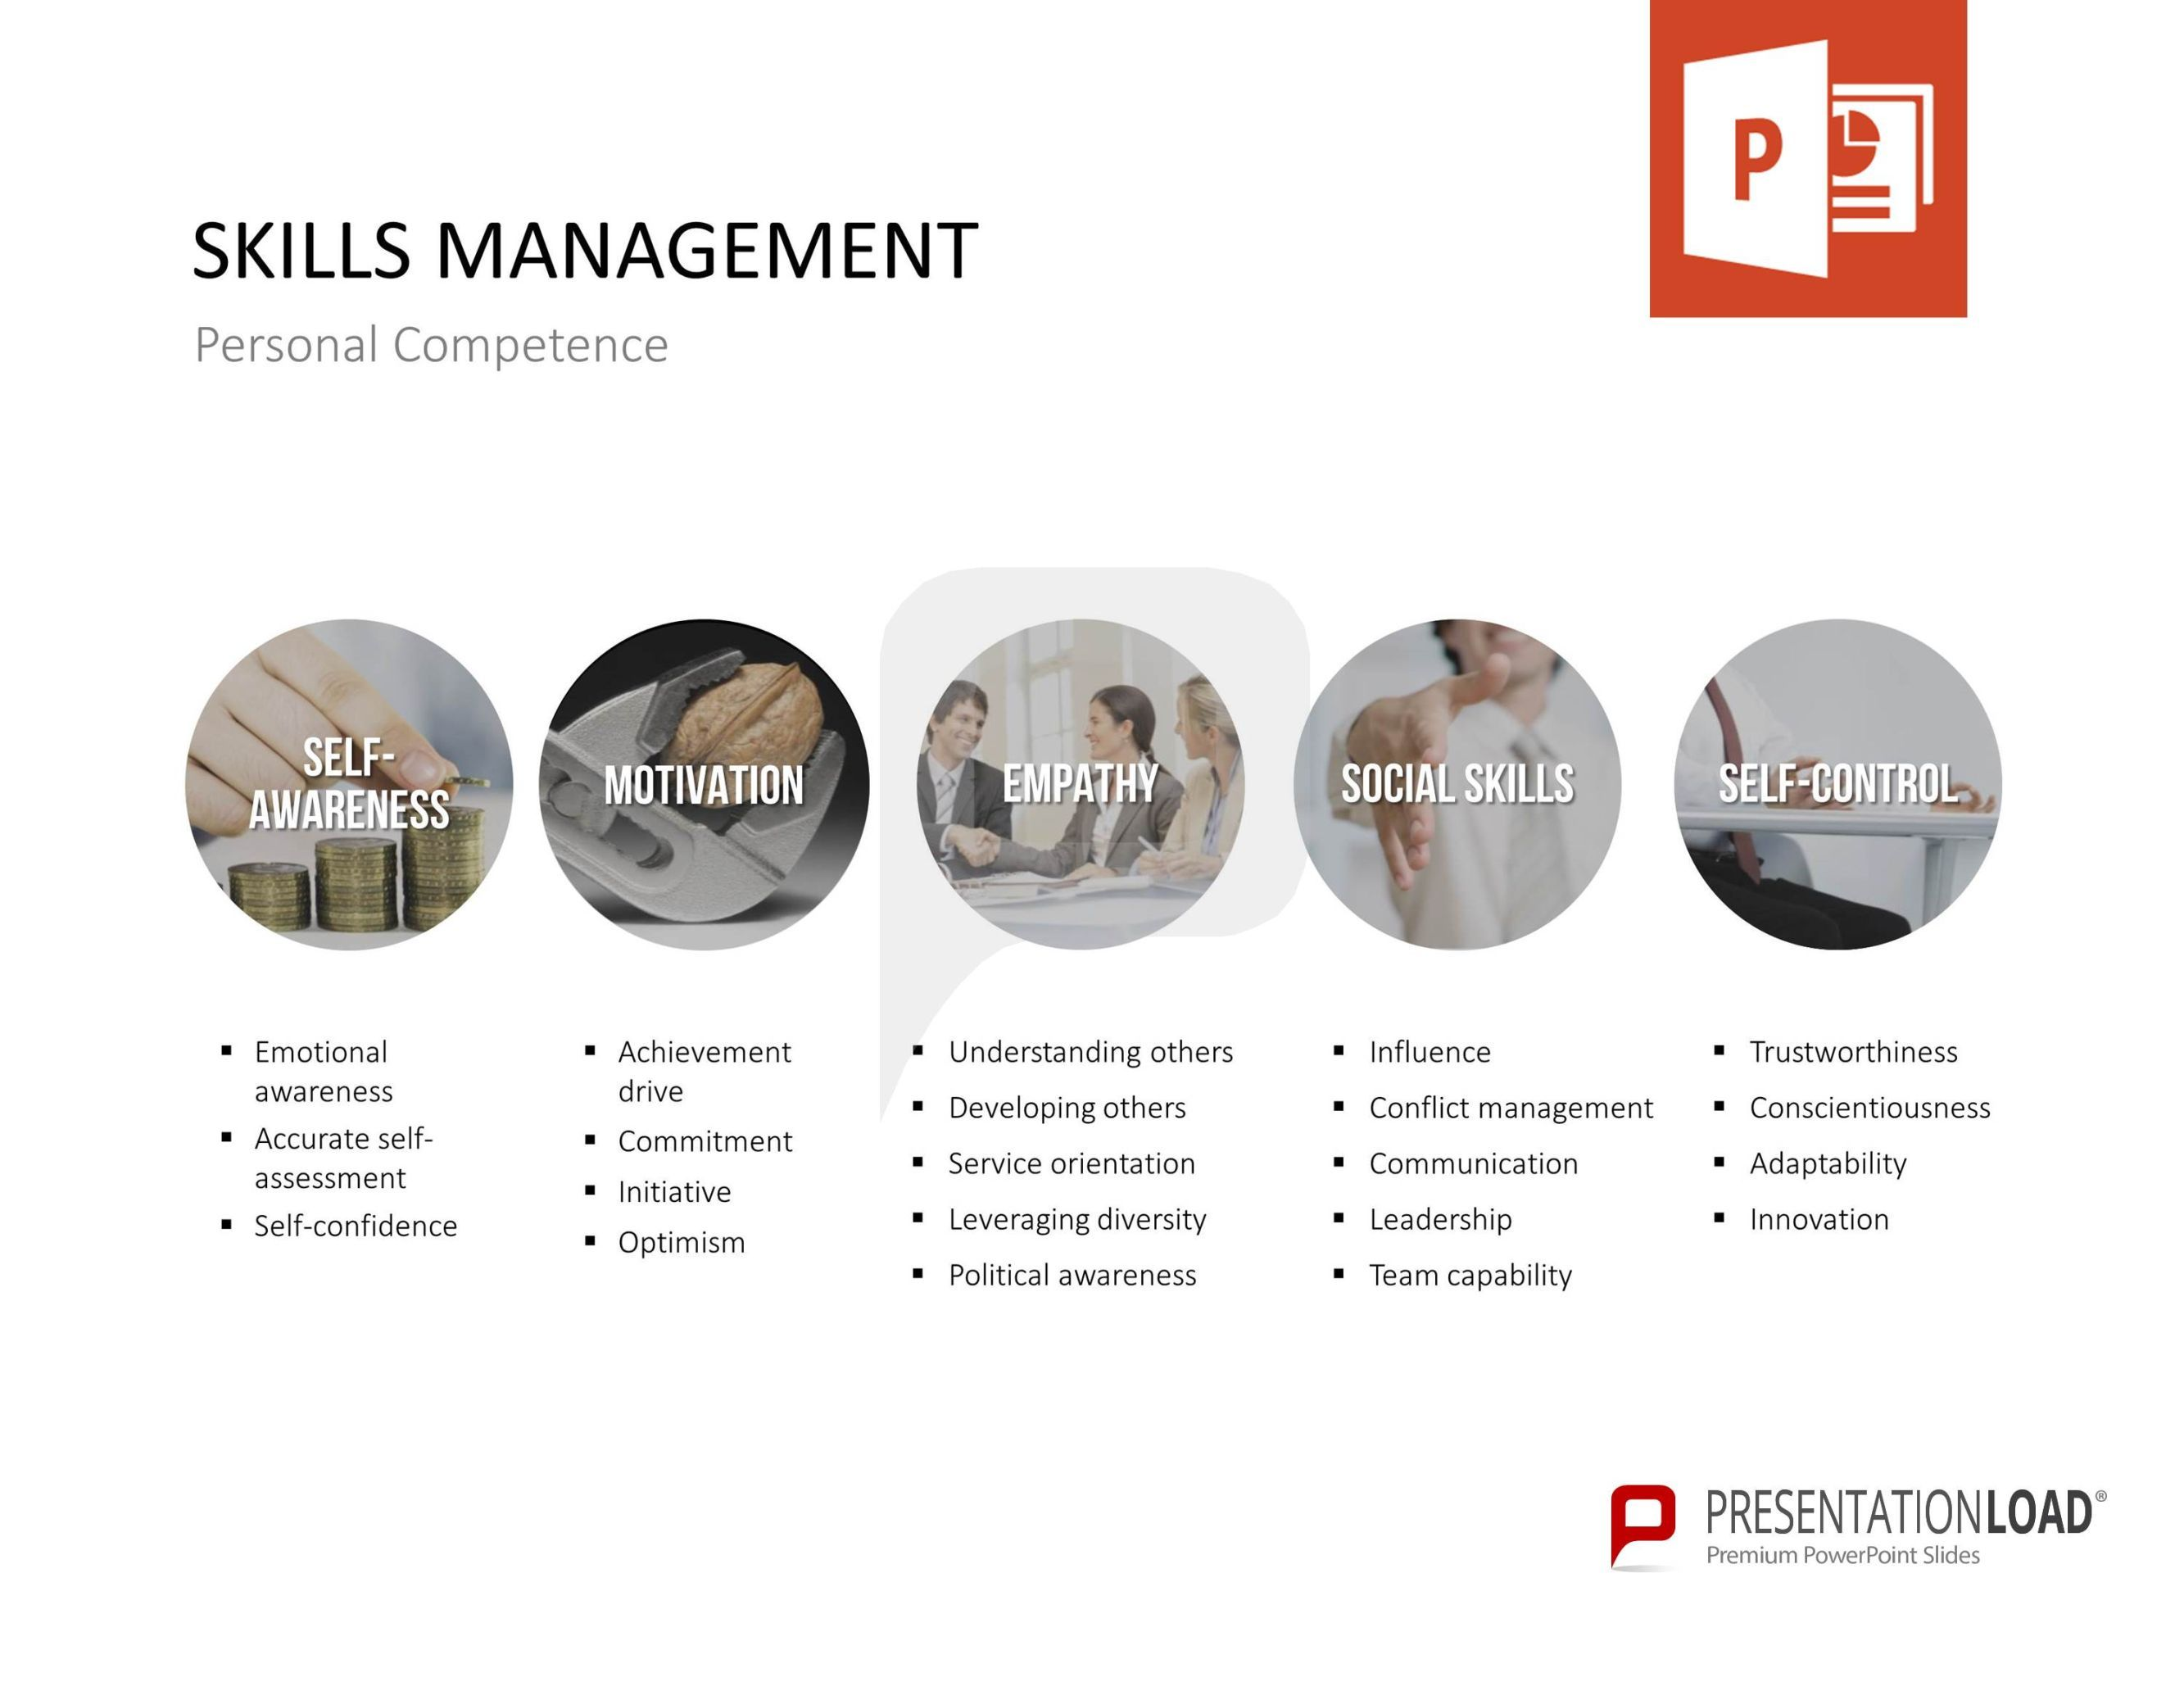 Pin by Presentation Load on SKILLS MANAGEMENT // POWERPOINT ...